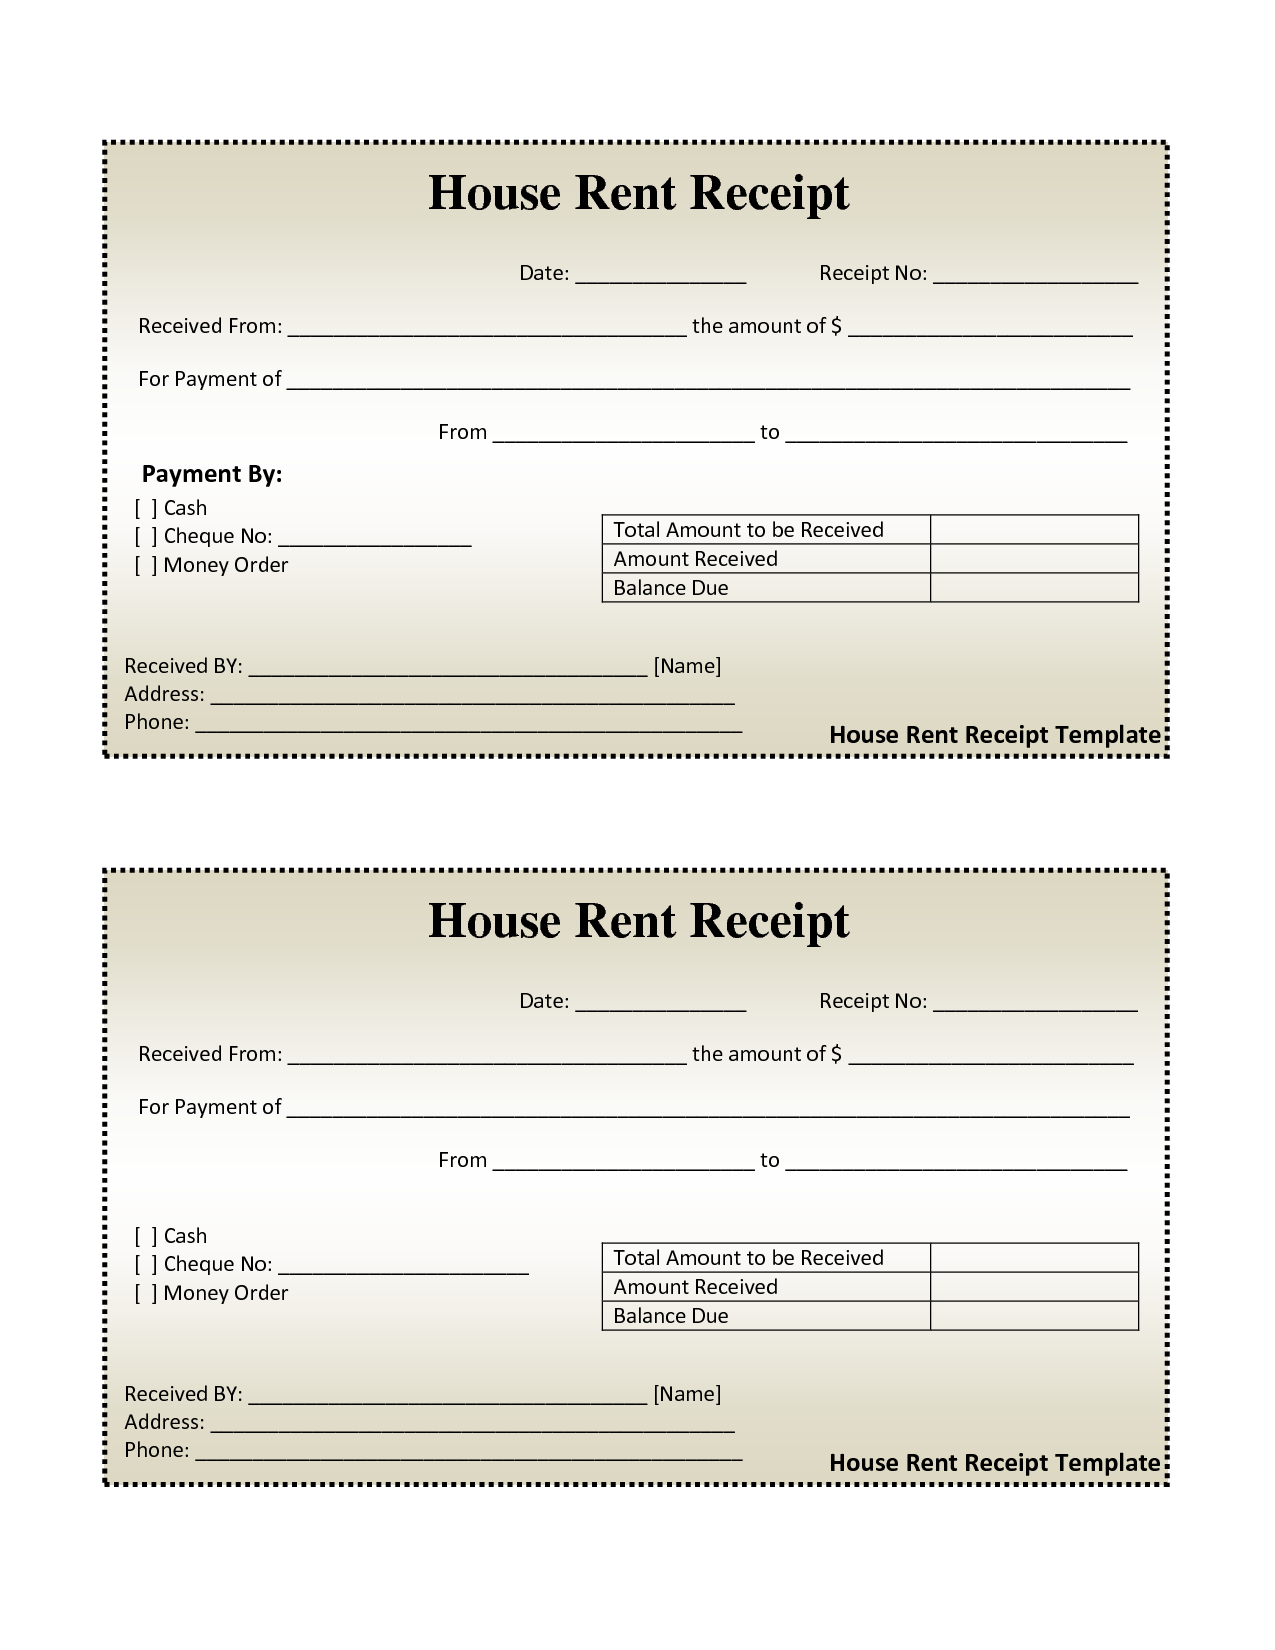 Free House Rental Invoice  House Rent Receipt Template  Doc In Monthly Rent Invoice Template